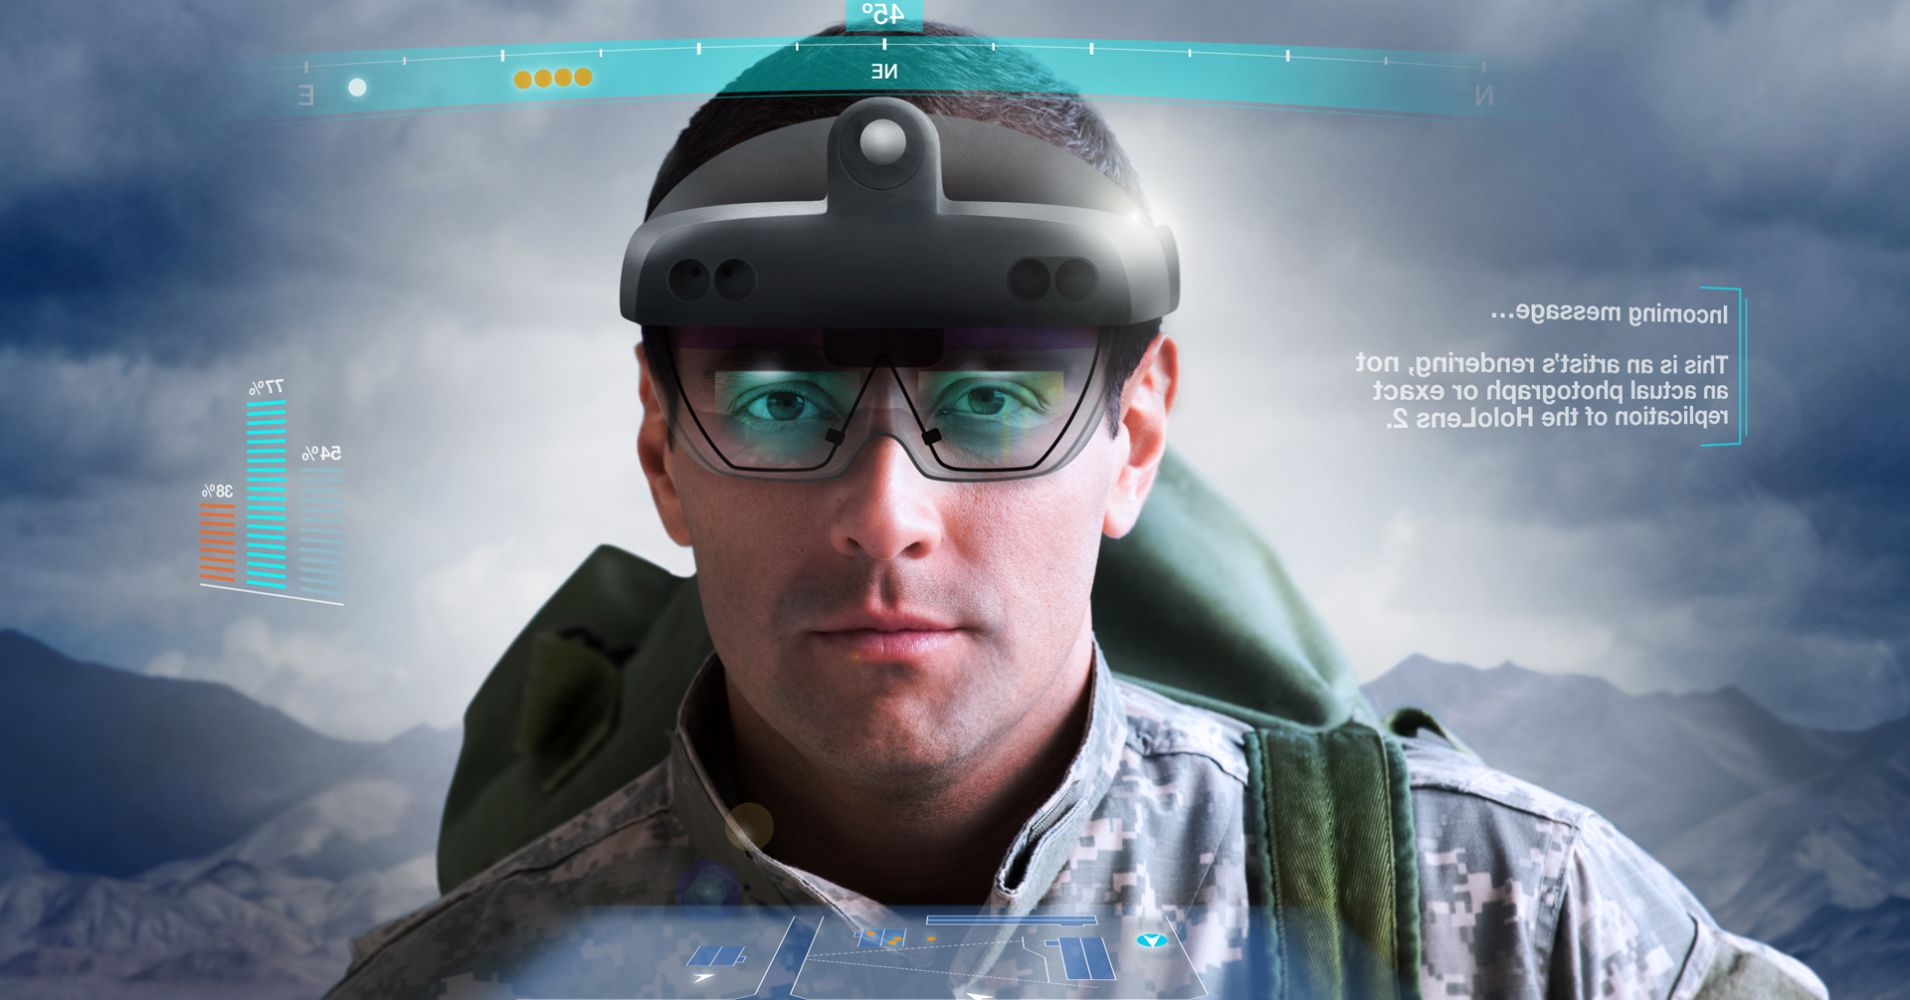 Microsoft's Army HoloLens is Being Tested